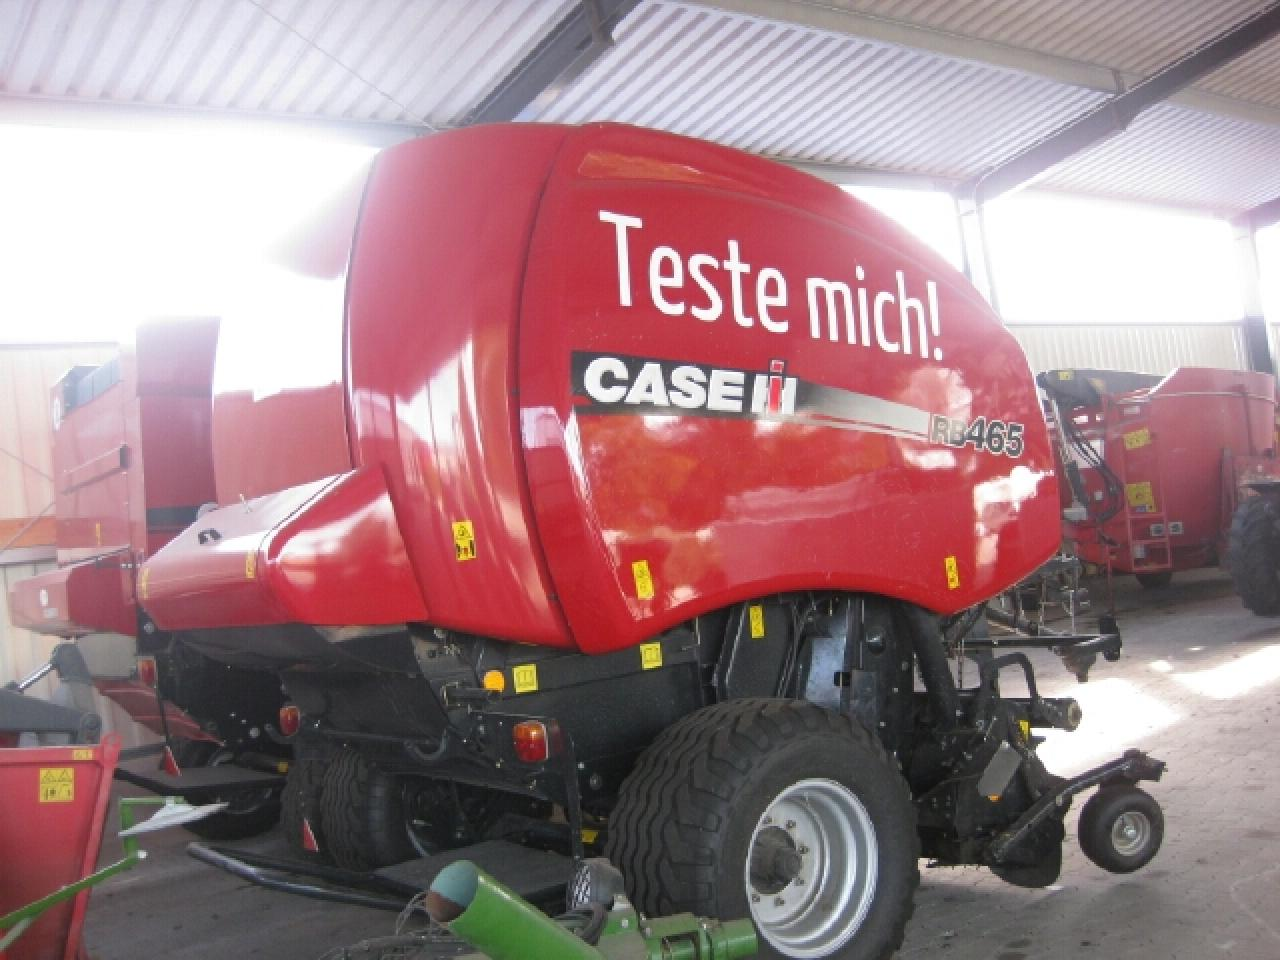 Case RB 465 RC